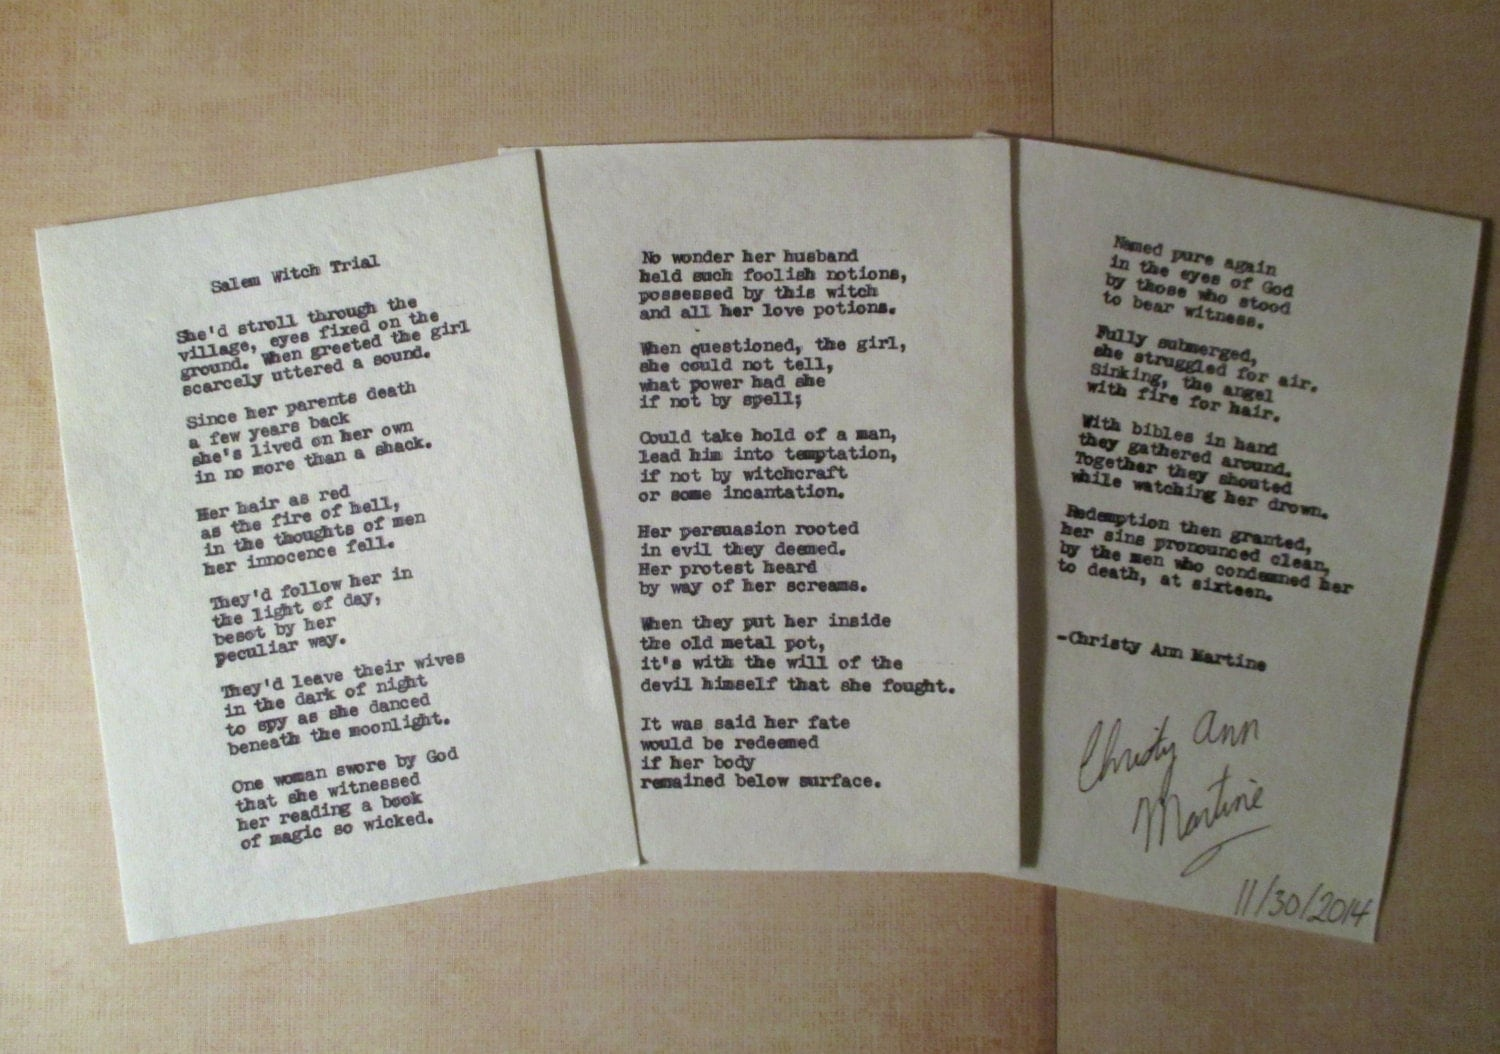 poetry poems m witch trial poem hand typed onto handmade paper  poetry poems m witch trial poem hand typed onto handmade paper poets poetry art by christy ann martine